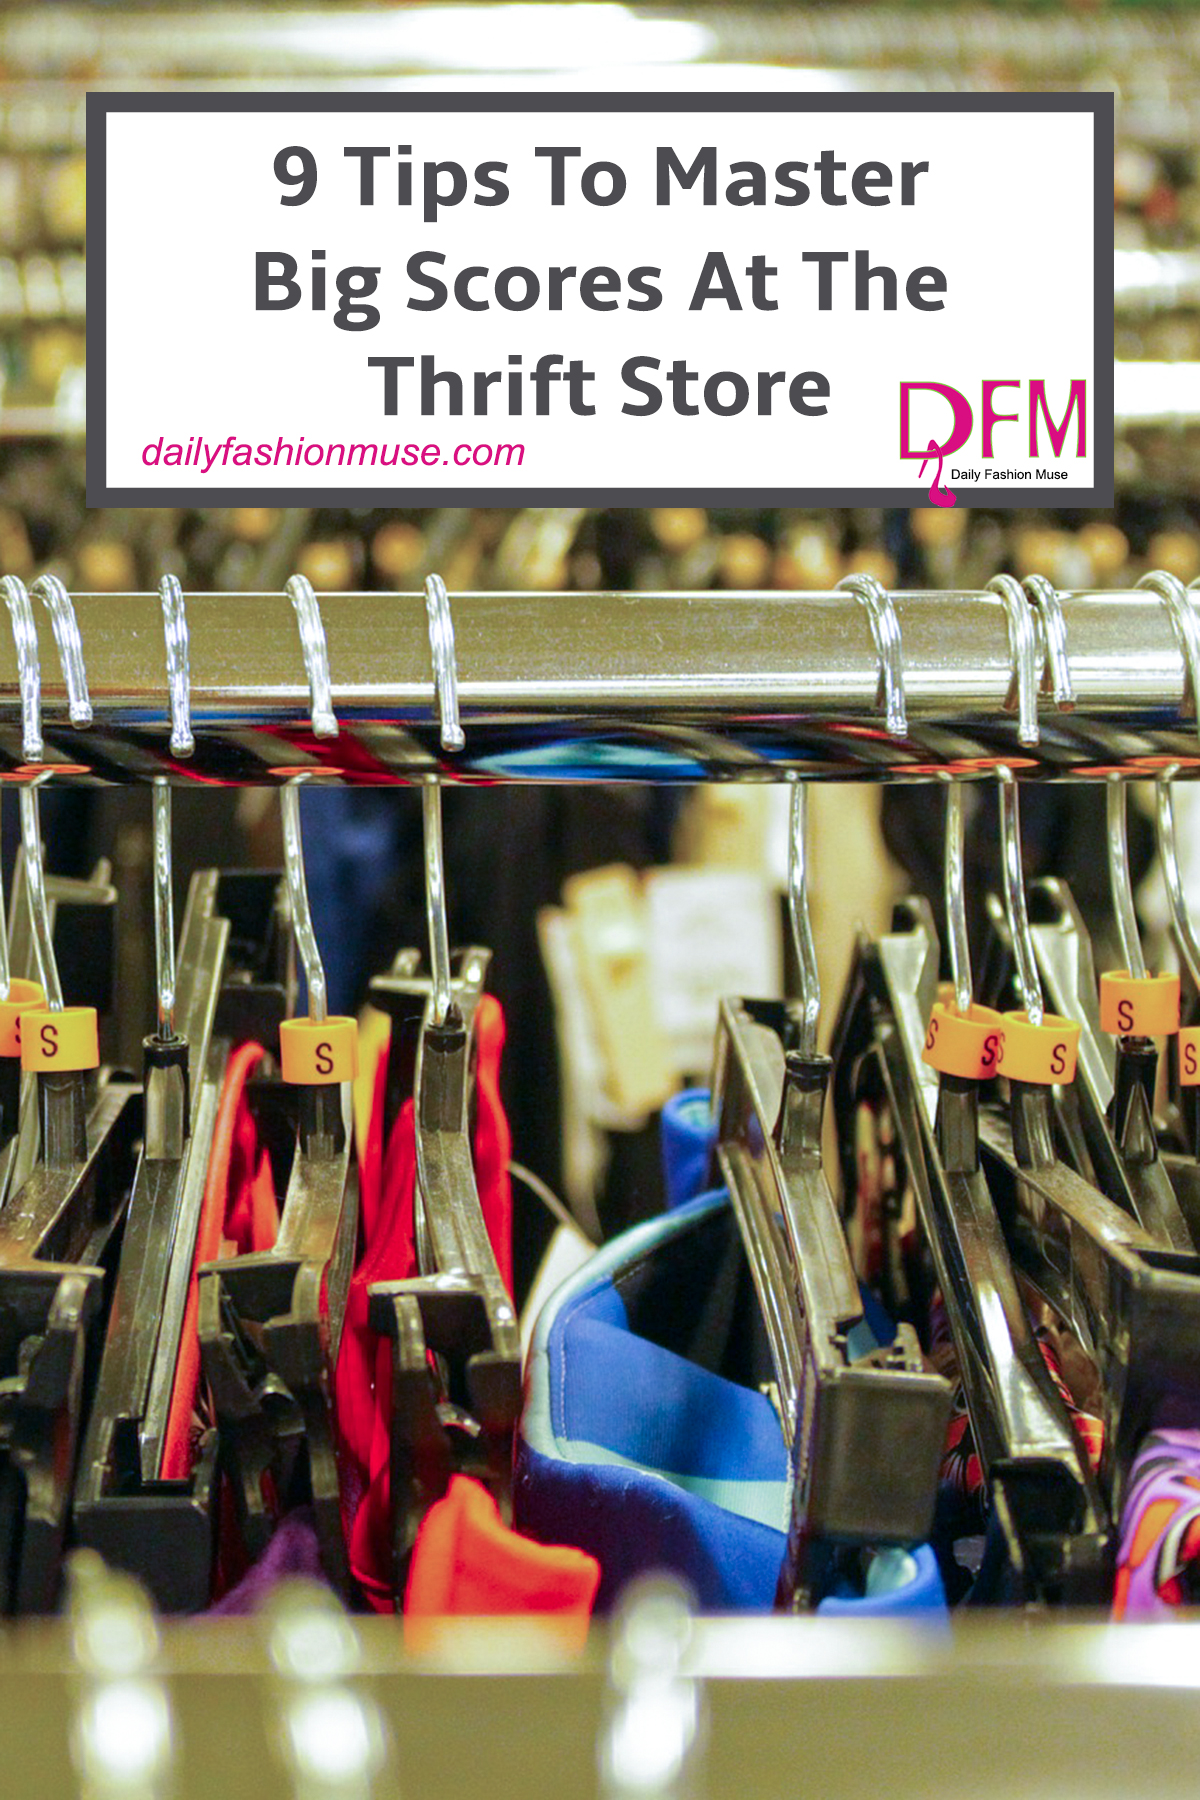 9 Thrift Store Shopping Tips To Help You Score Big